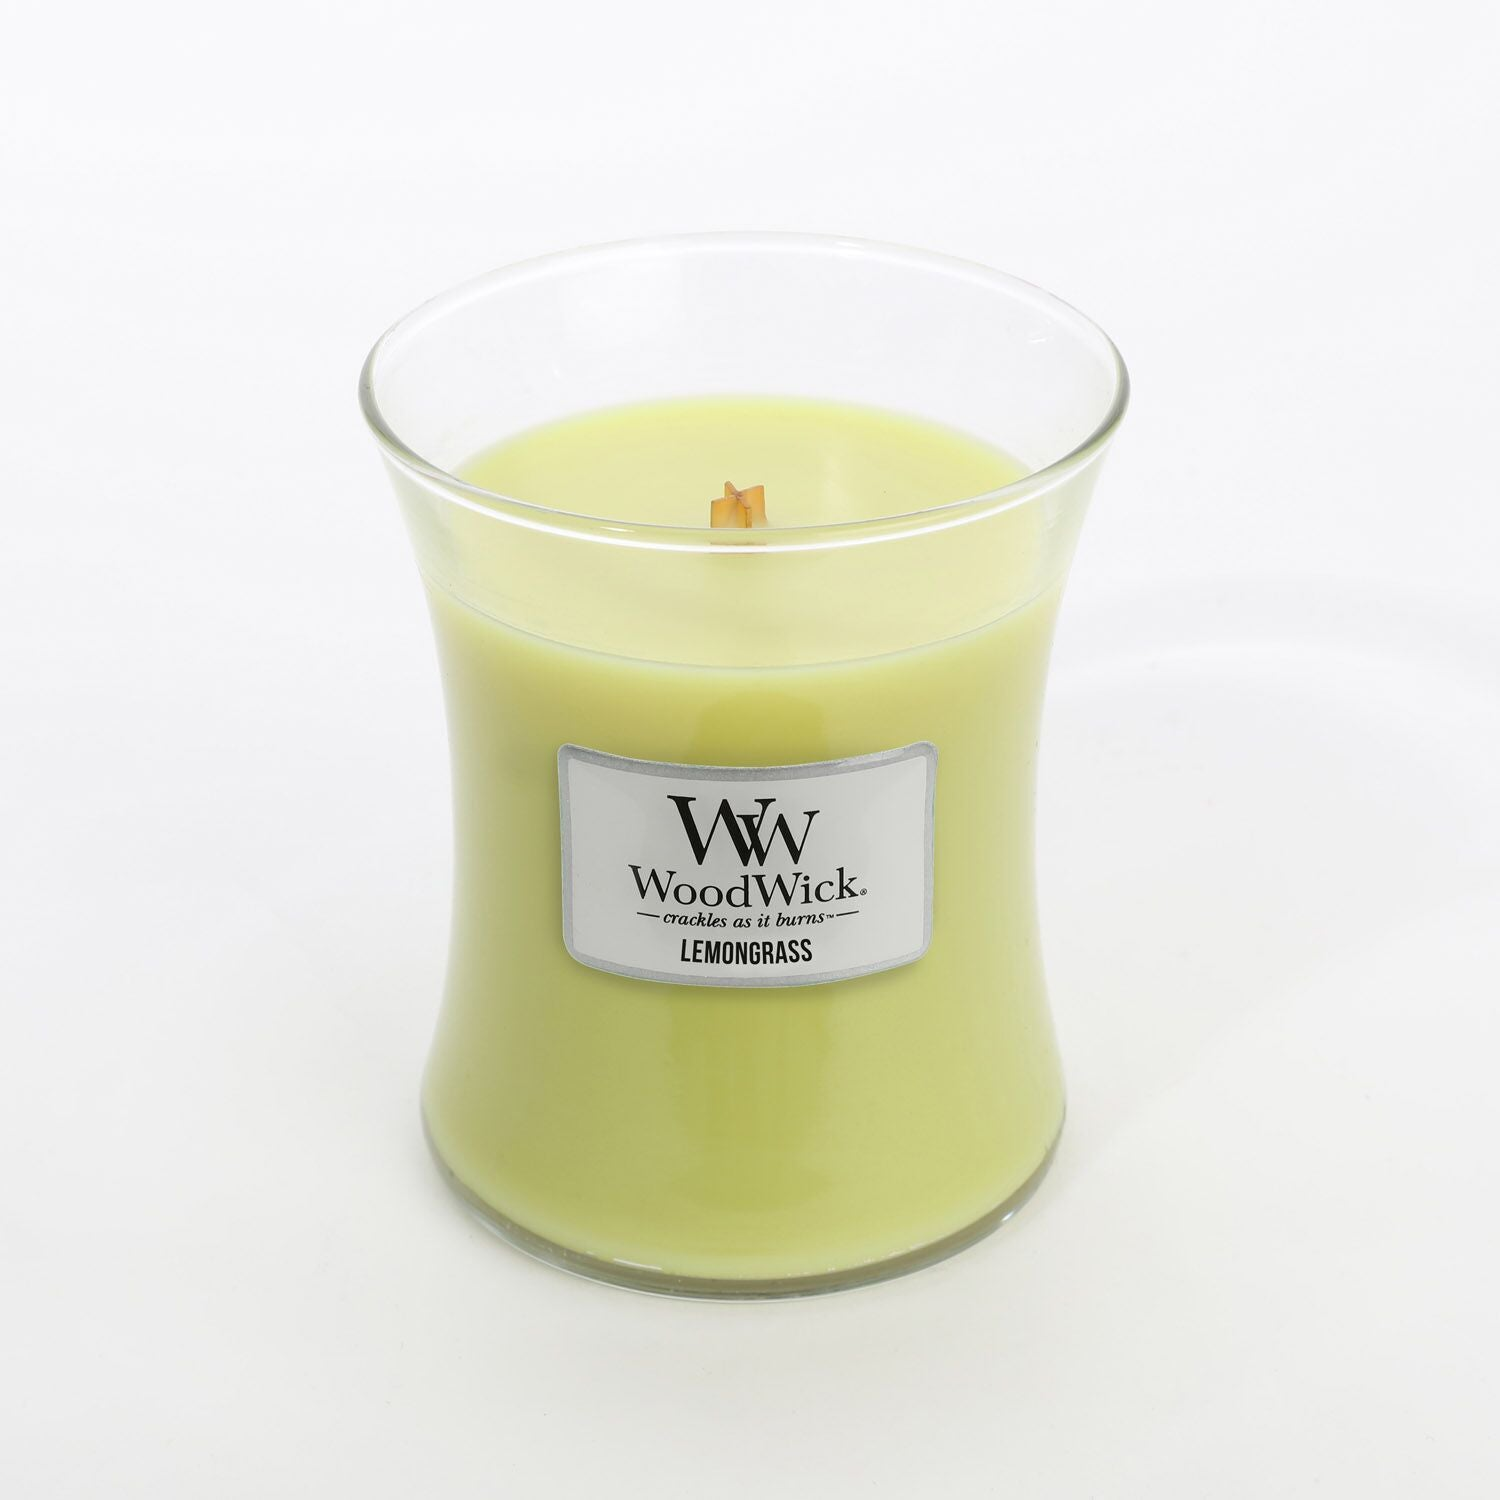 Medium Lemongrass Scented WoodWick Soy Candle